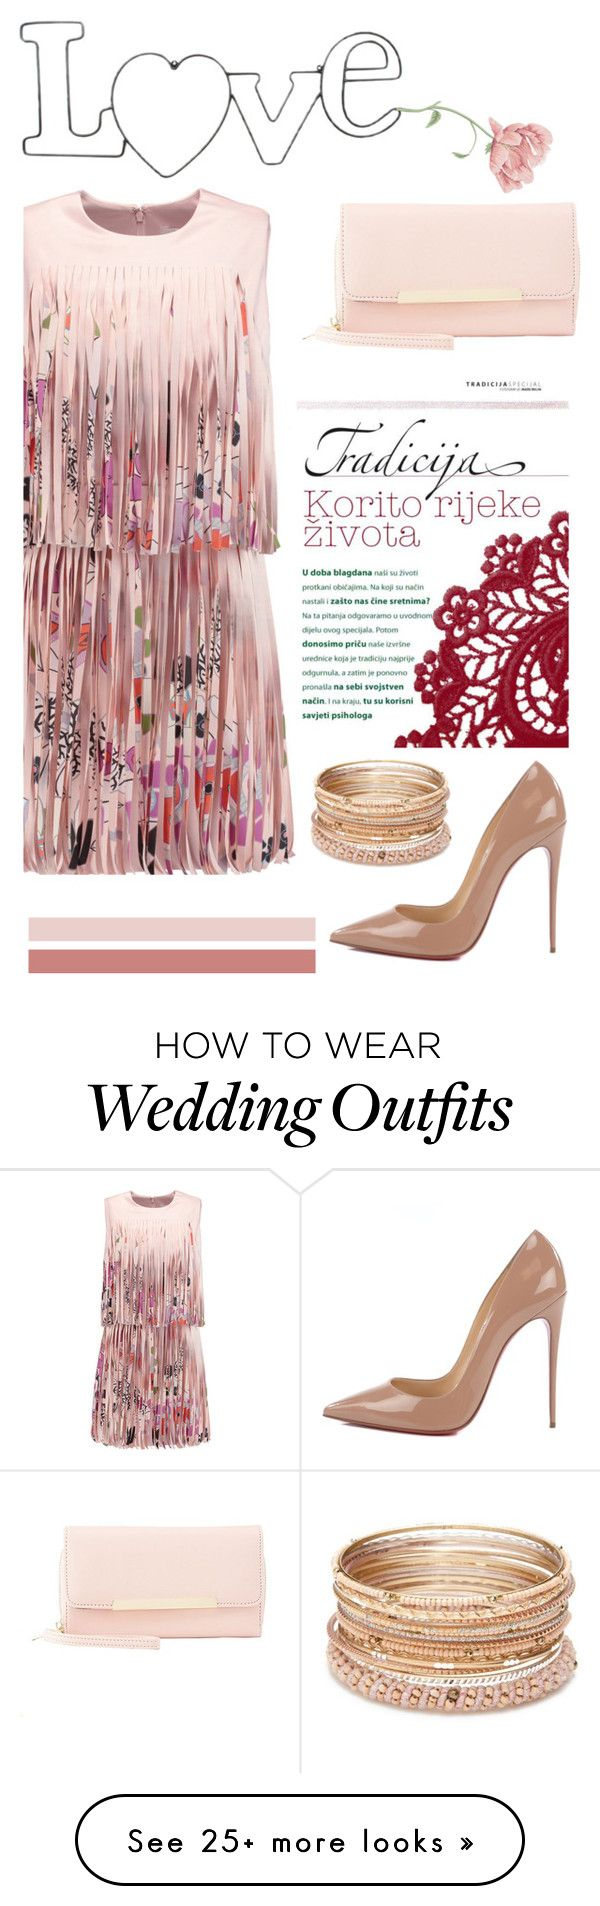 """""""Best Dressed Guest: Barn Weddings"""" by burpy on Polyvore featuring Alexis, Charlotte Russe, Christian Louboutin, Red Camel and rustic"""